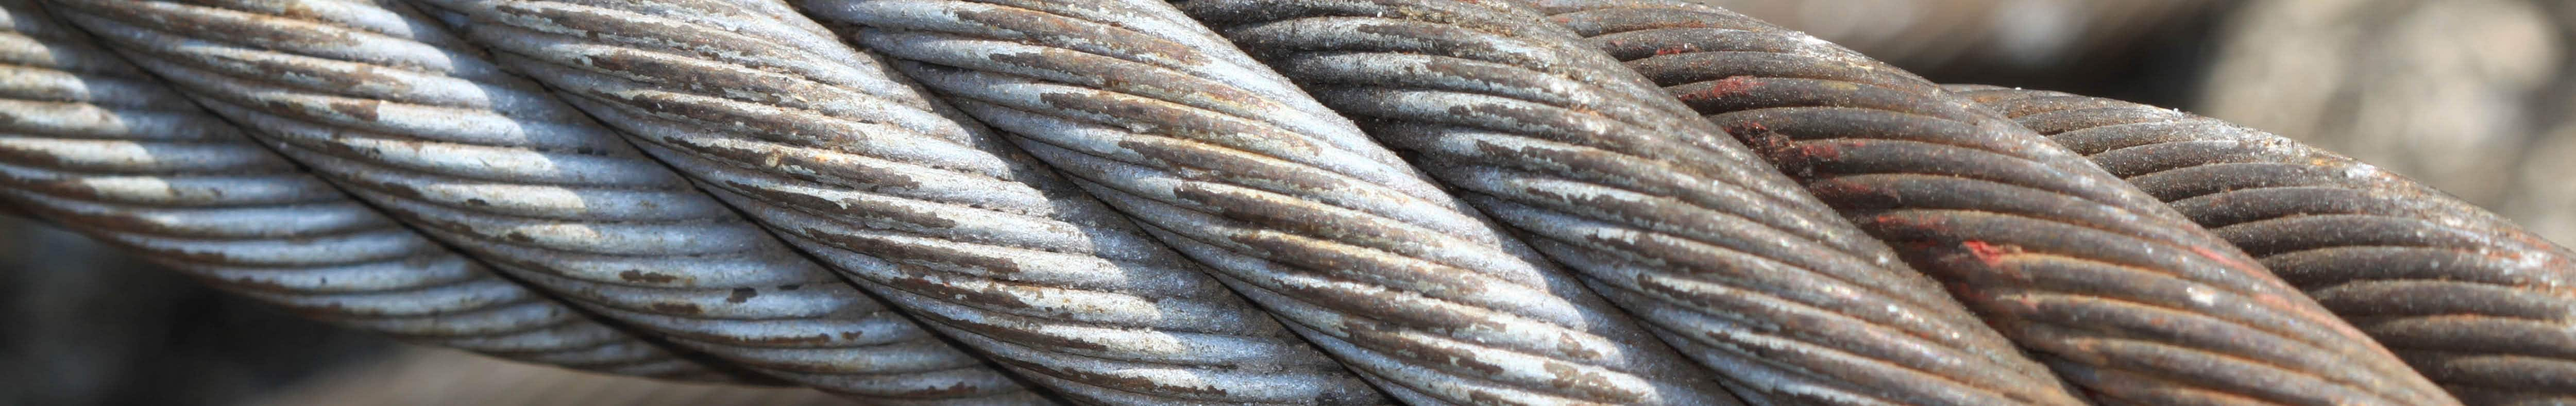 Wire Rope Oil |Anti-Seize Lubricant | Loosen Rusted, Corroded Nuts ...